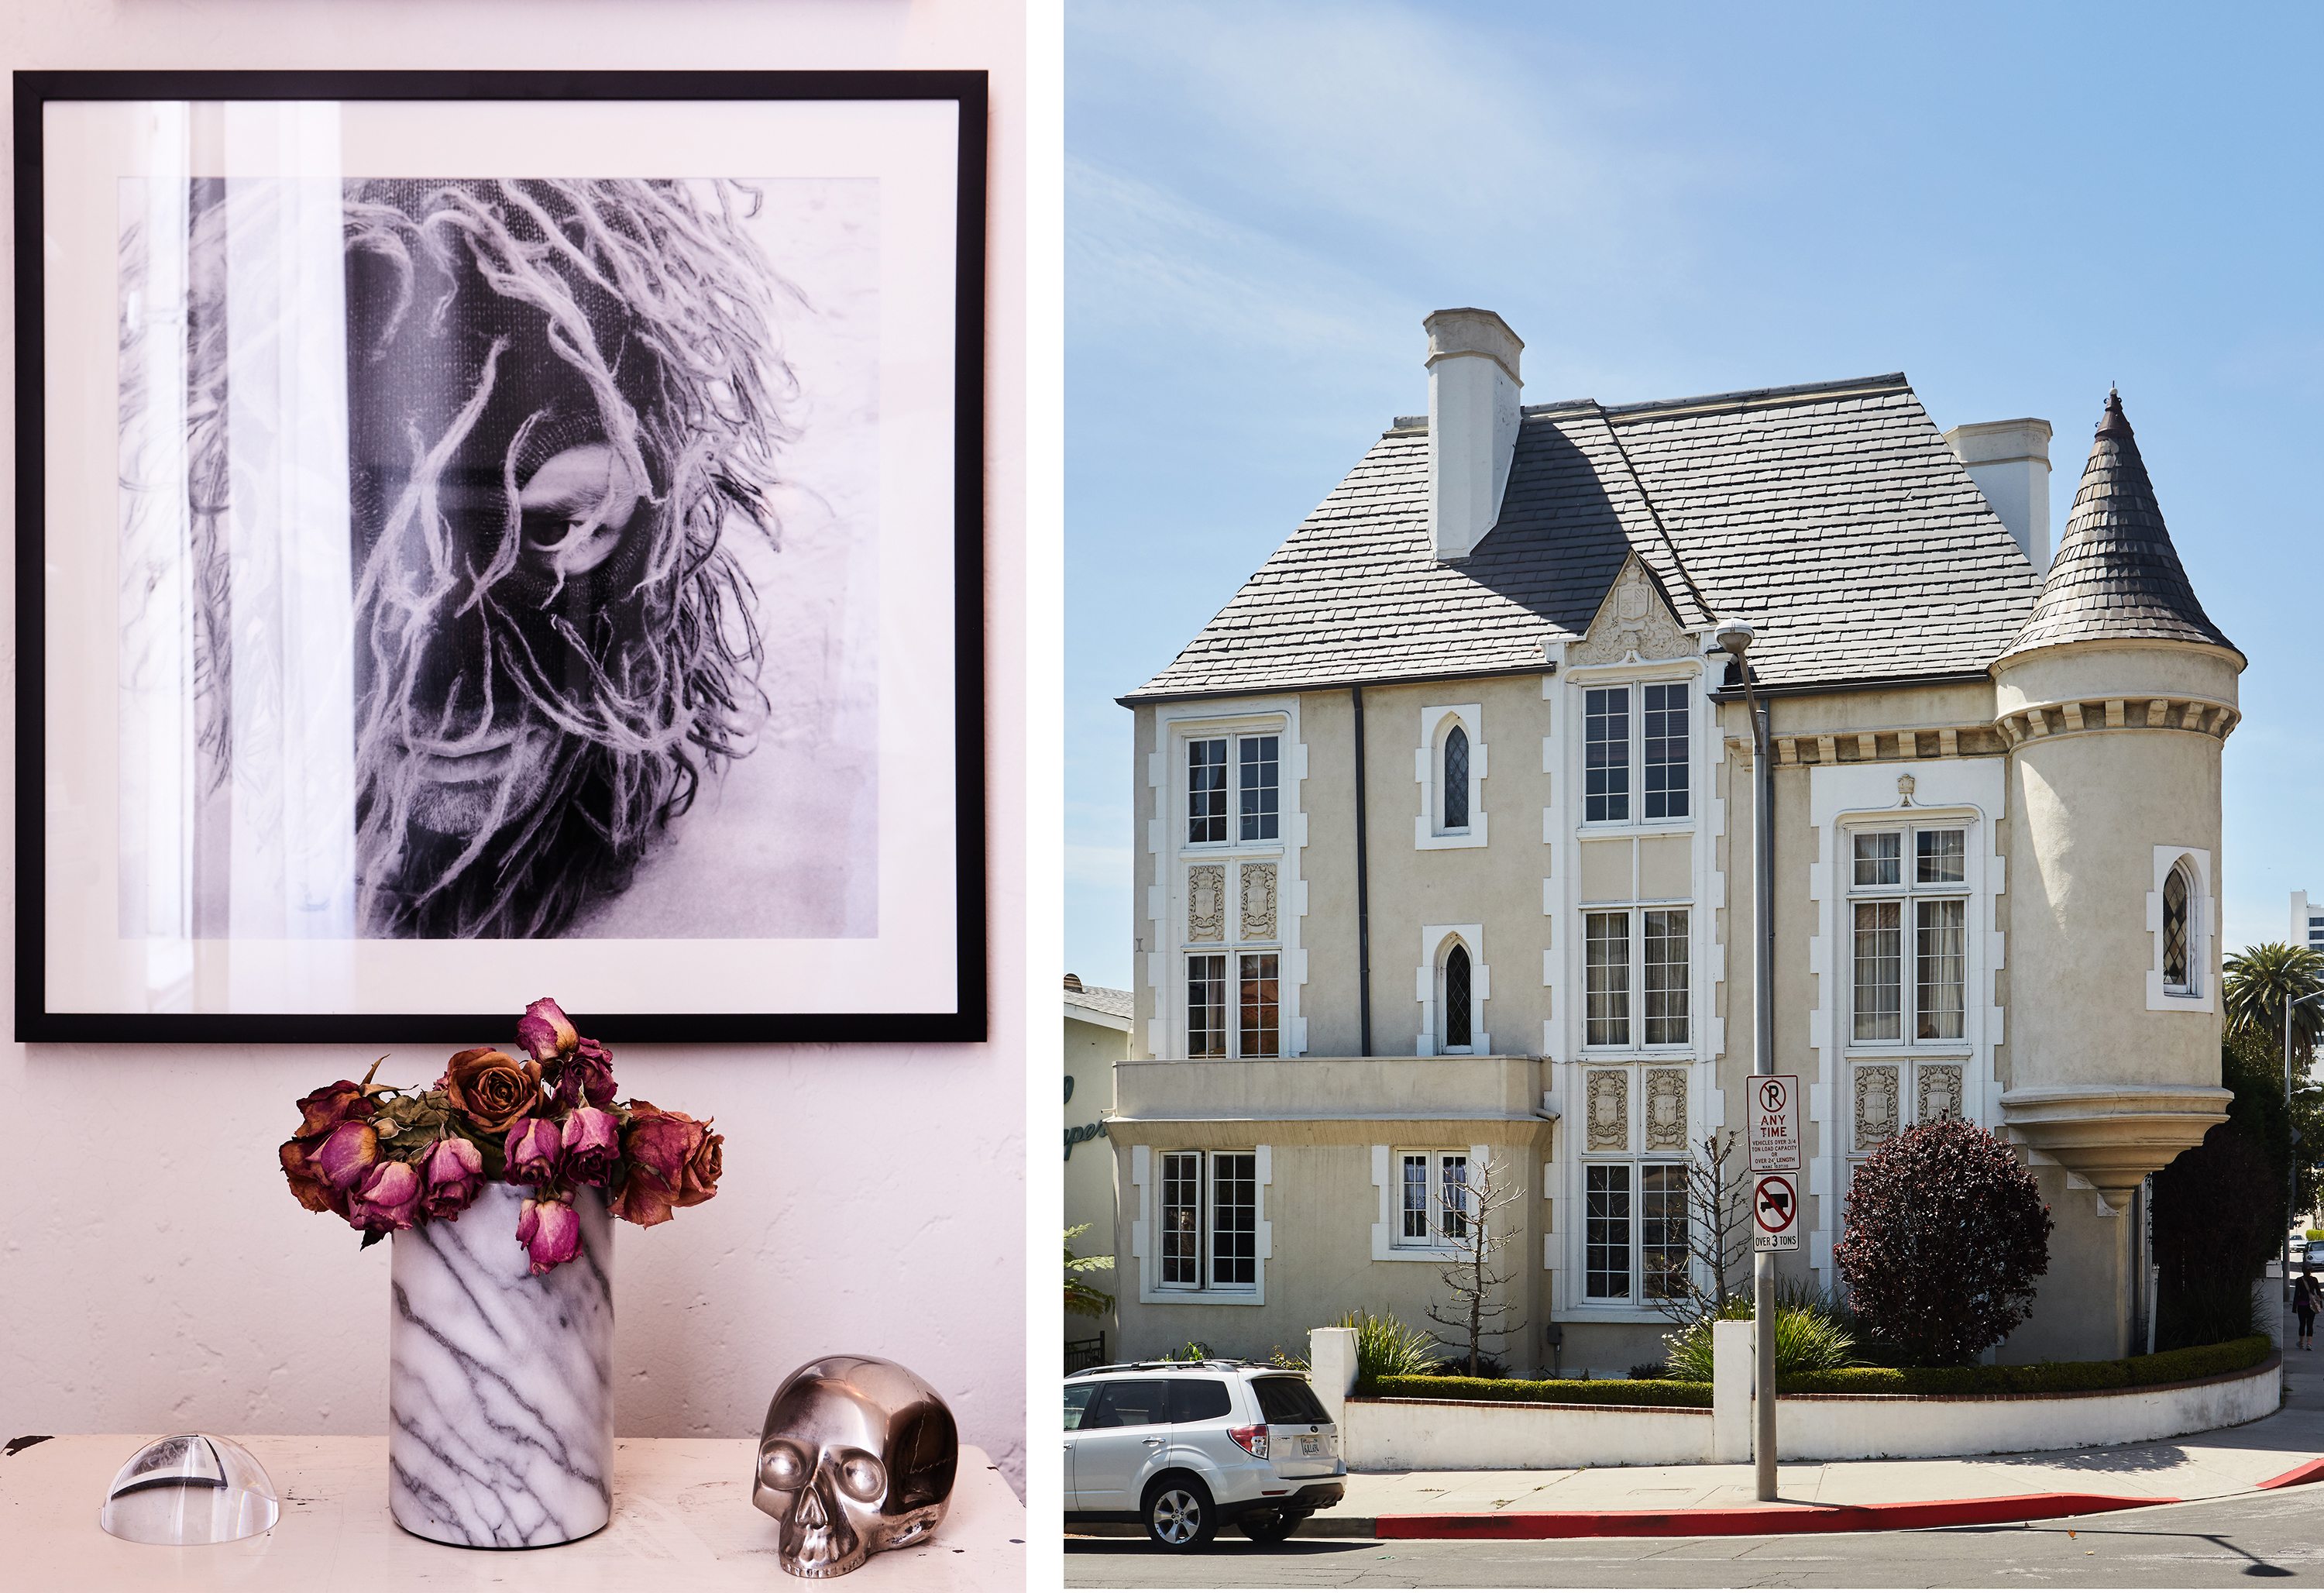 A black-and-white photo hangs over a vase of decaying roses. The exterior of Paglialonga's home is done in a romantic chateau style, complete with turrets.